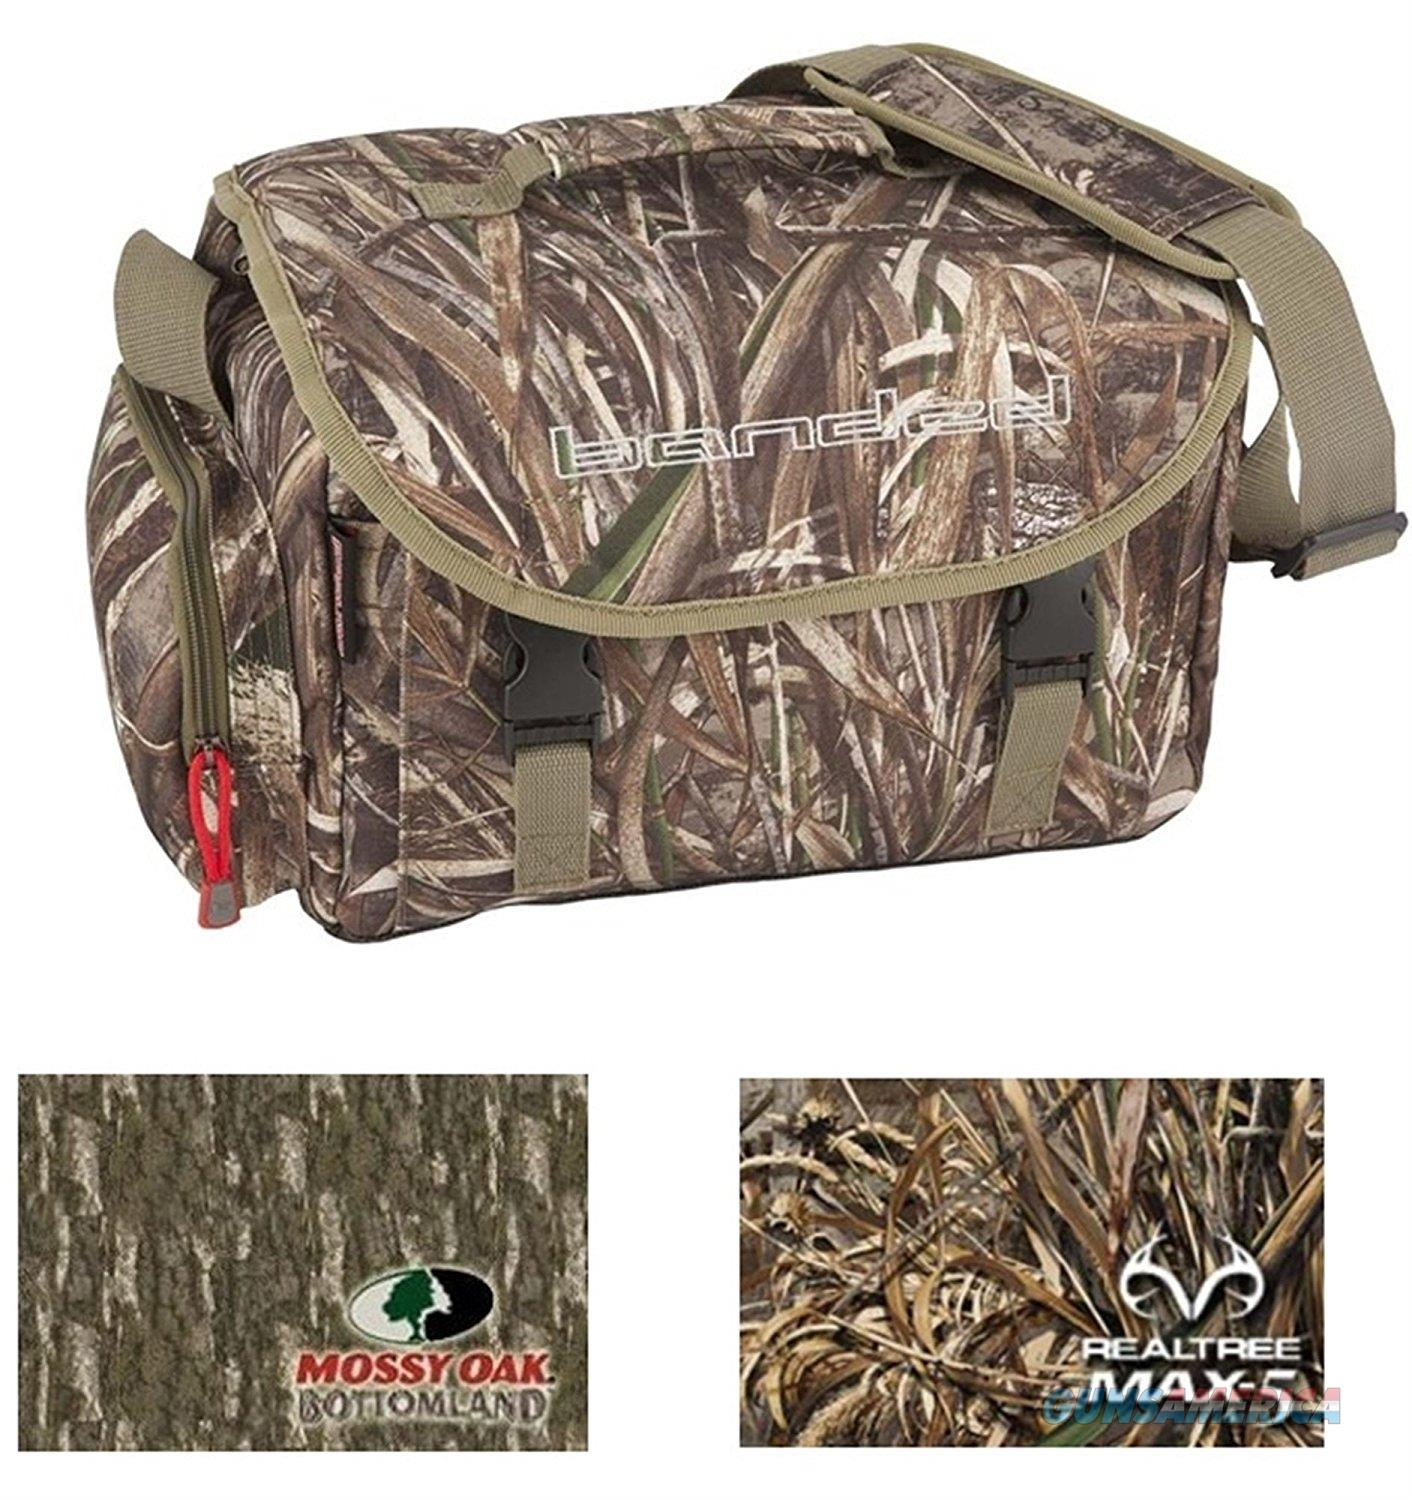 Banded Air II Blind Bag Max 5  Non-Guns > Hunting Clothing and Equipment > Ammo Pouches/Holders/Shell Bags